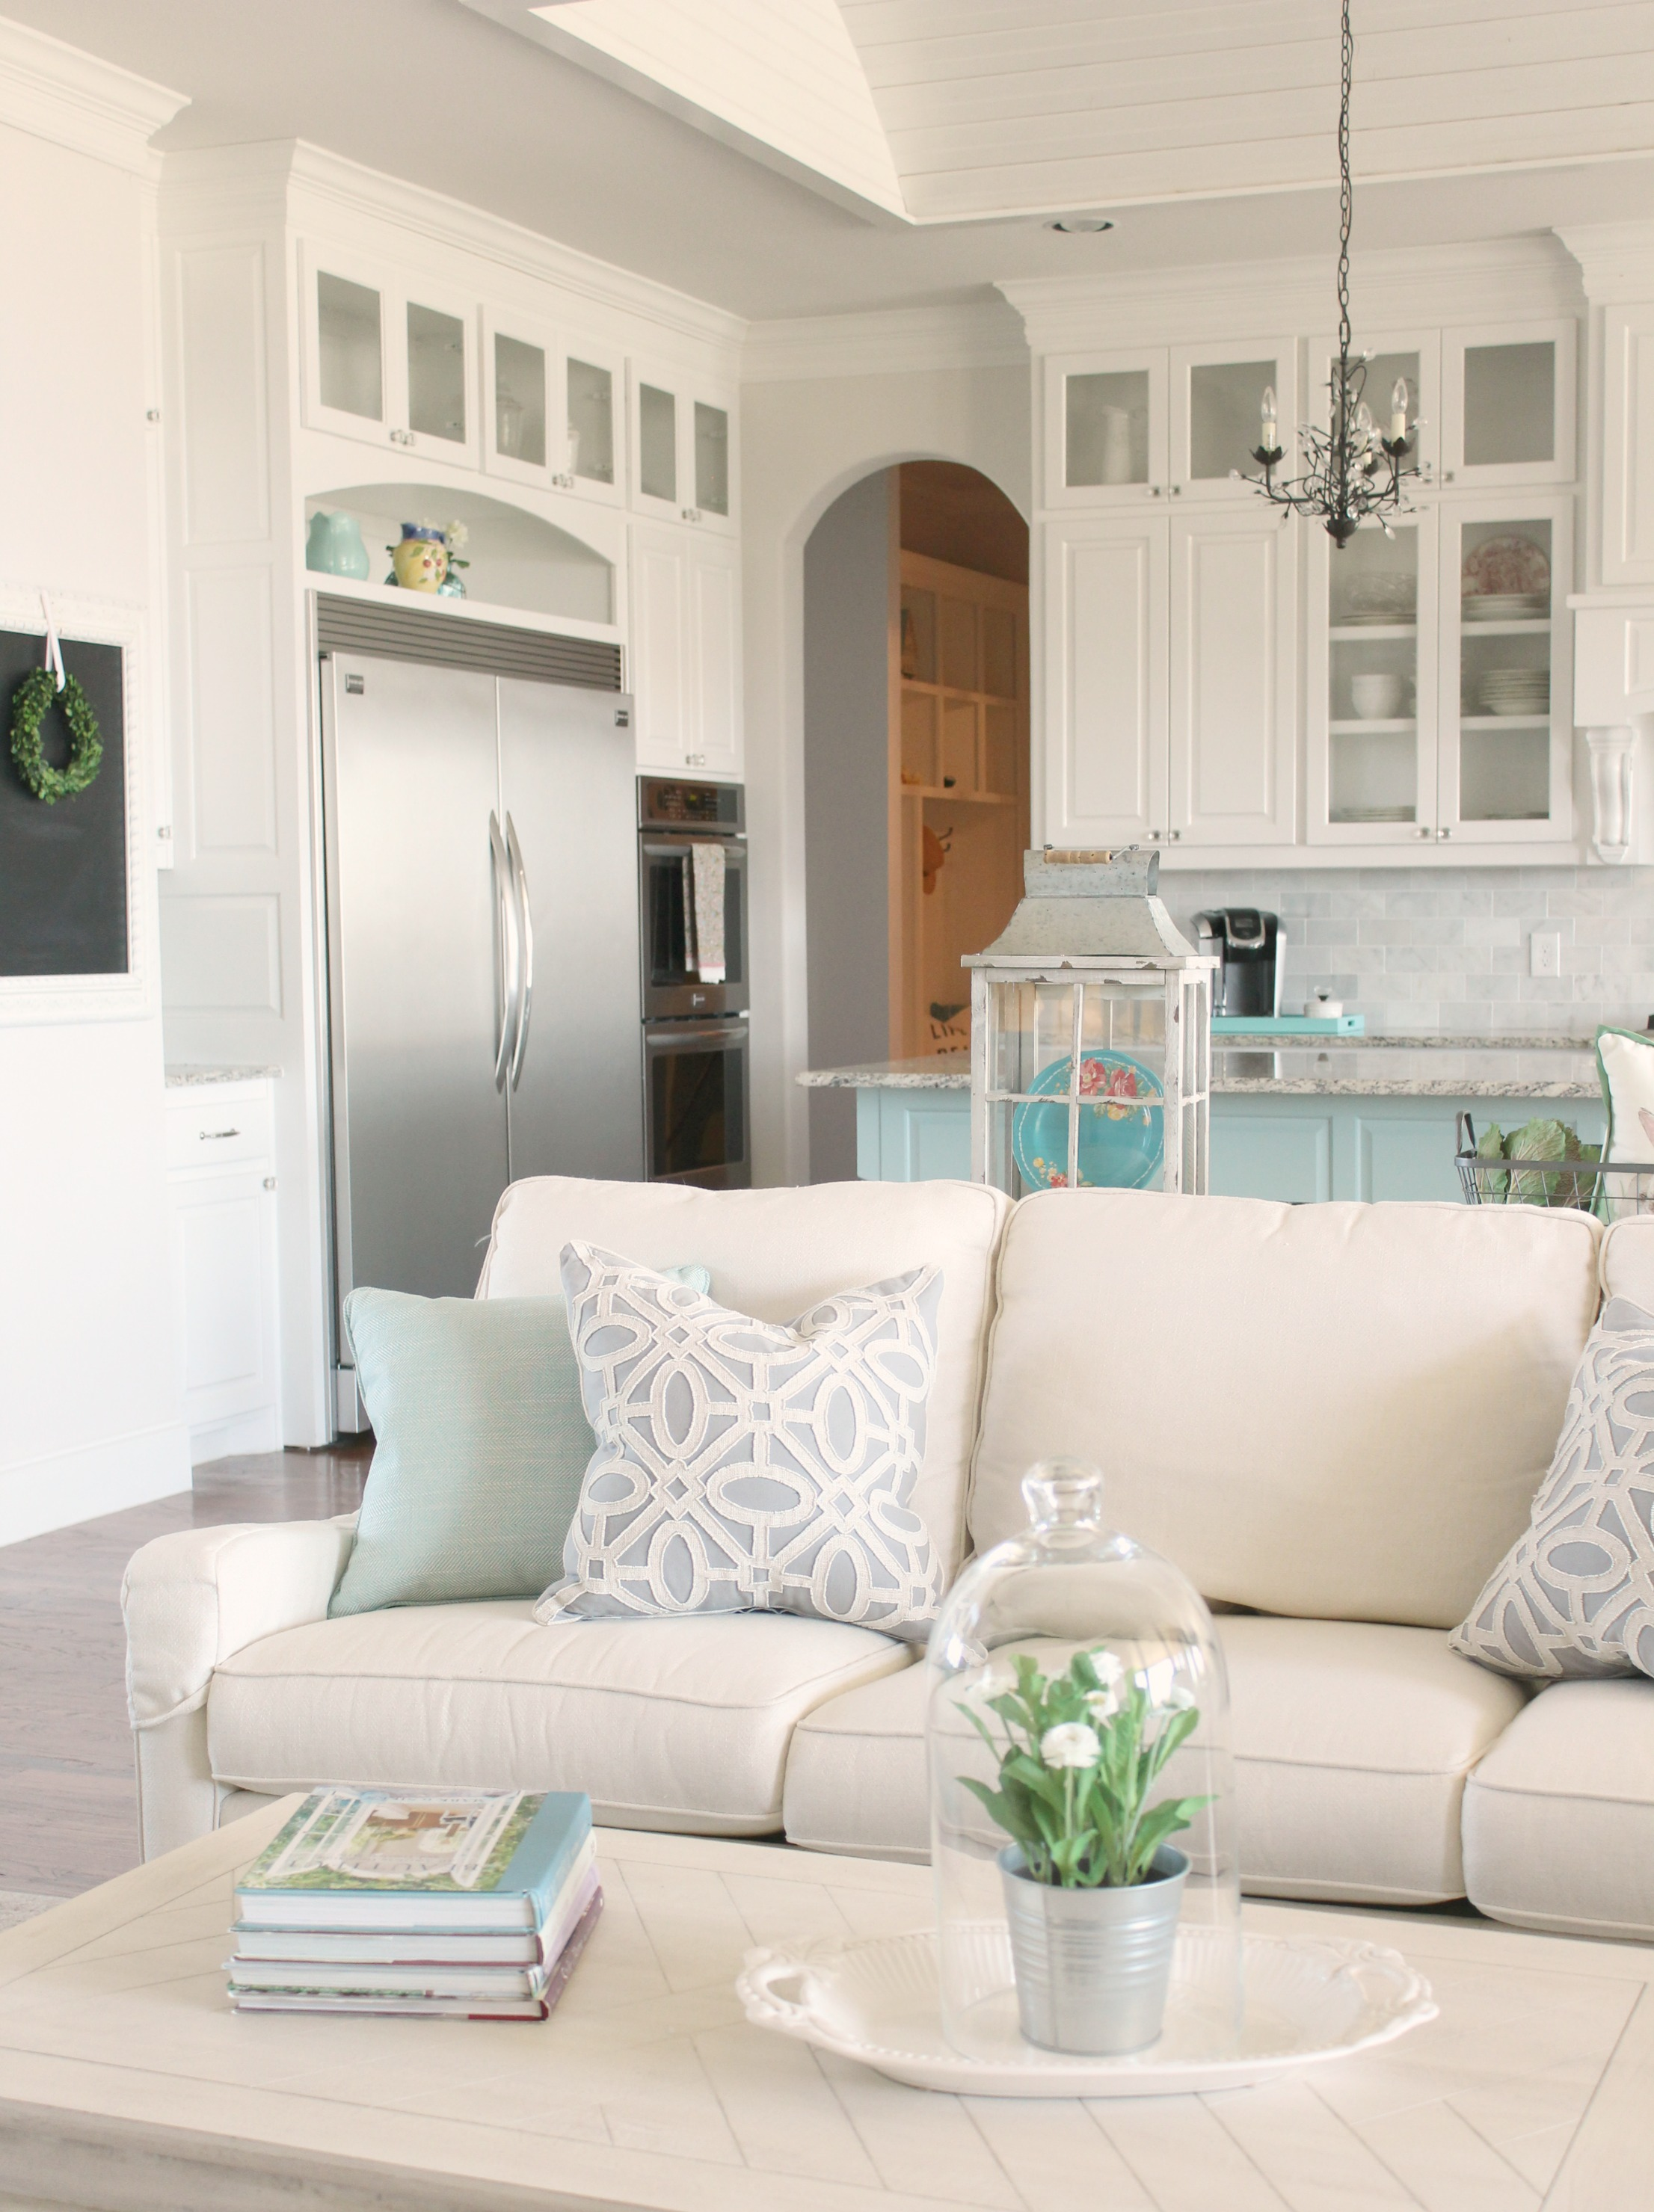 Feature Friday: Poofing the Pillows - Southern Hospitality